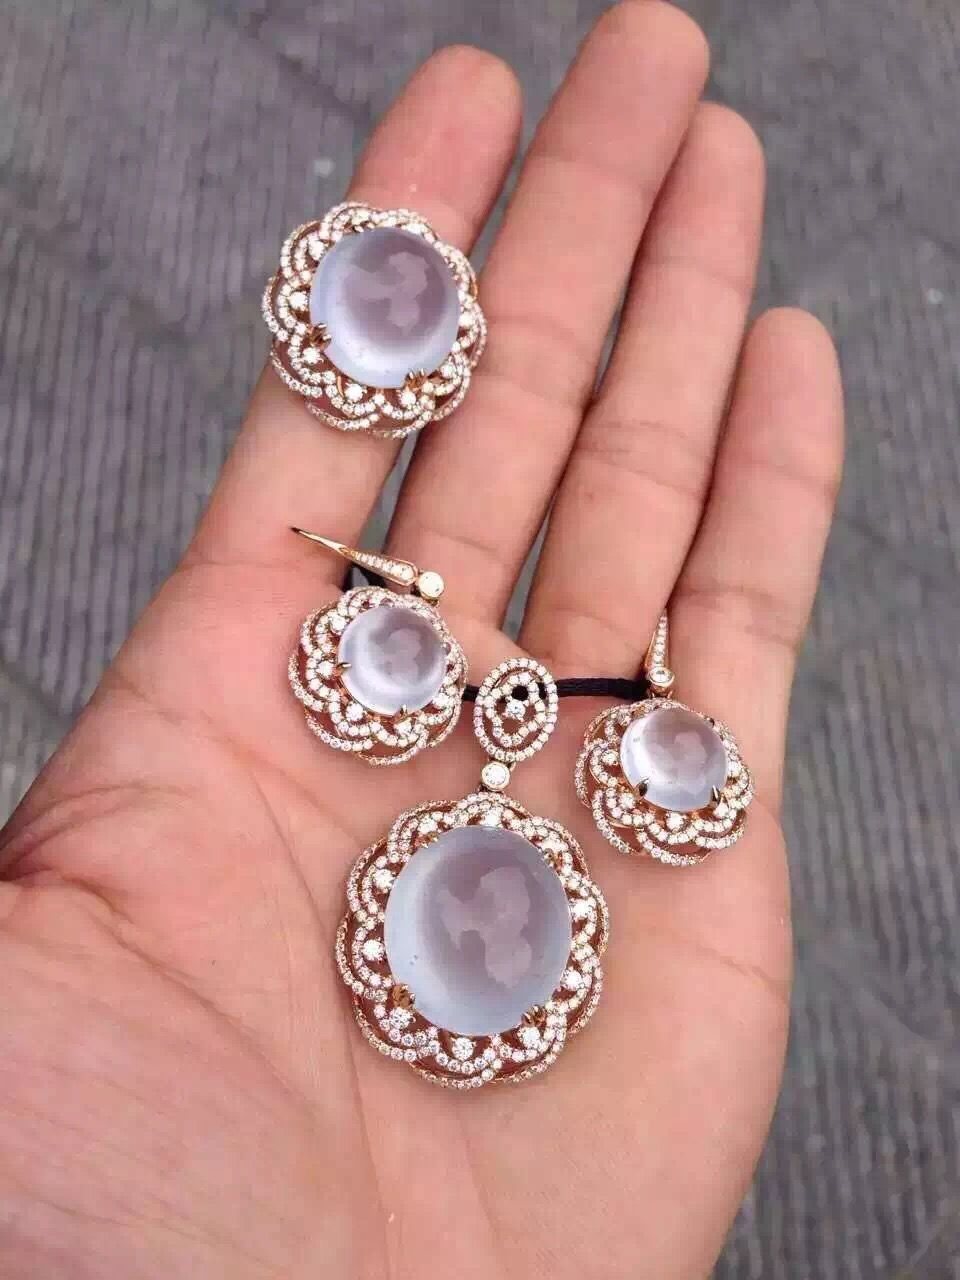 Beautiful icy clear jade 3-piece jewelry set ~ inquiry | Jade ...